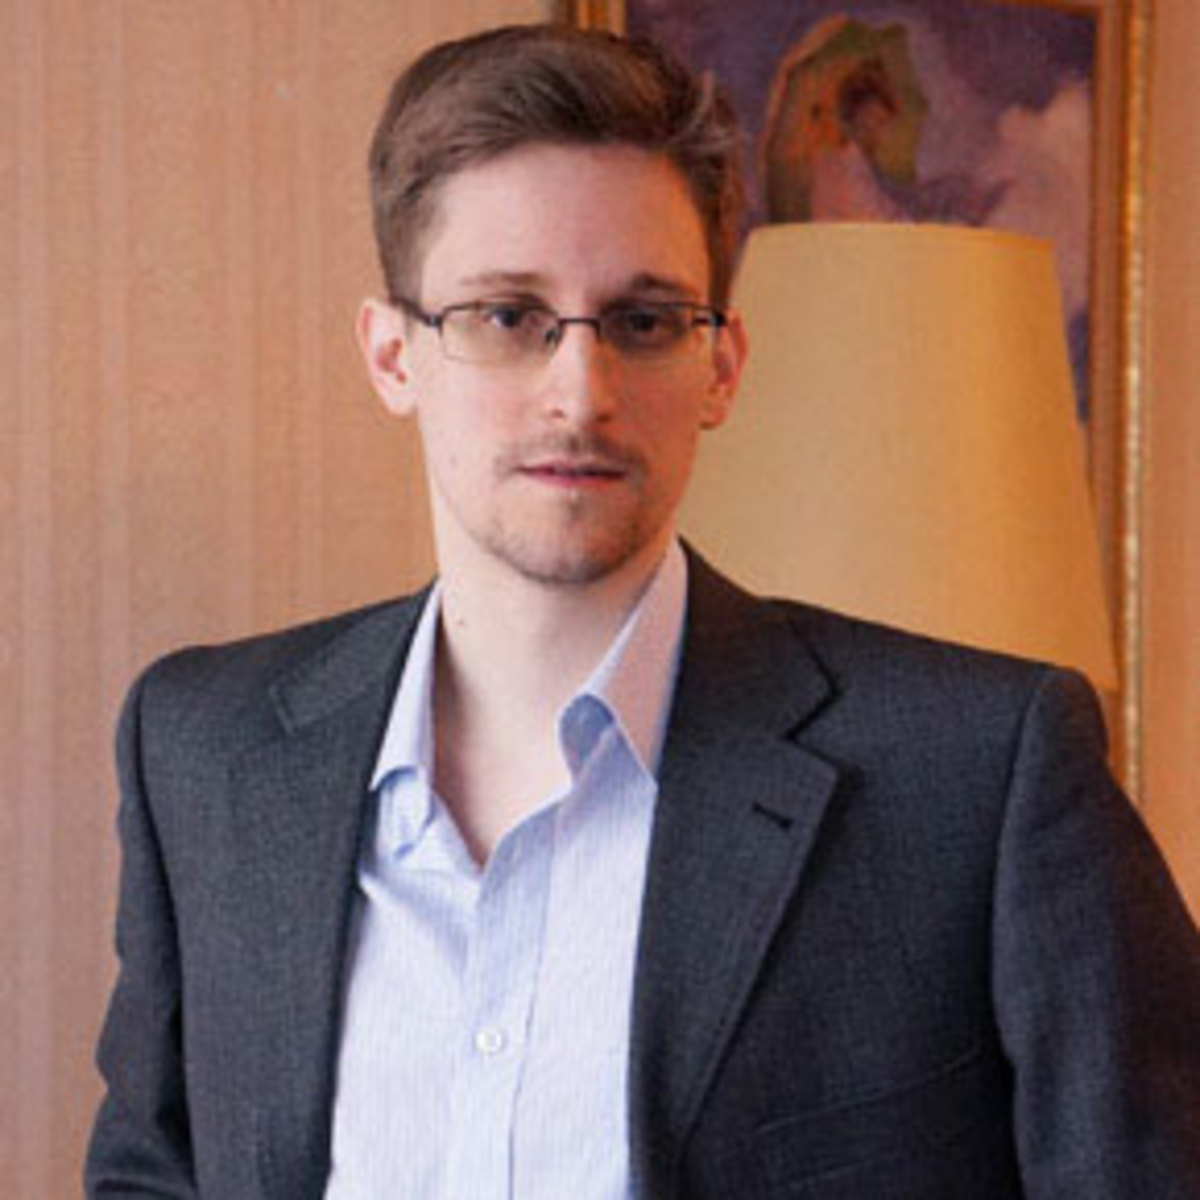 Operation Snow Job: The Edward Snowden Story